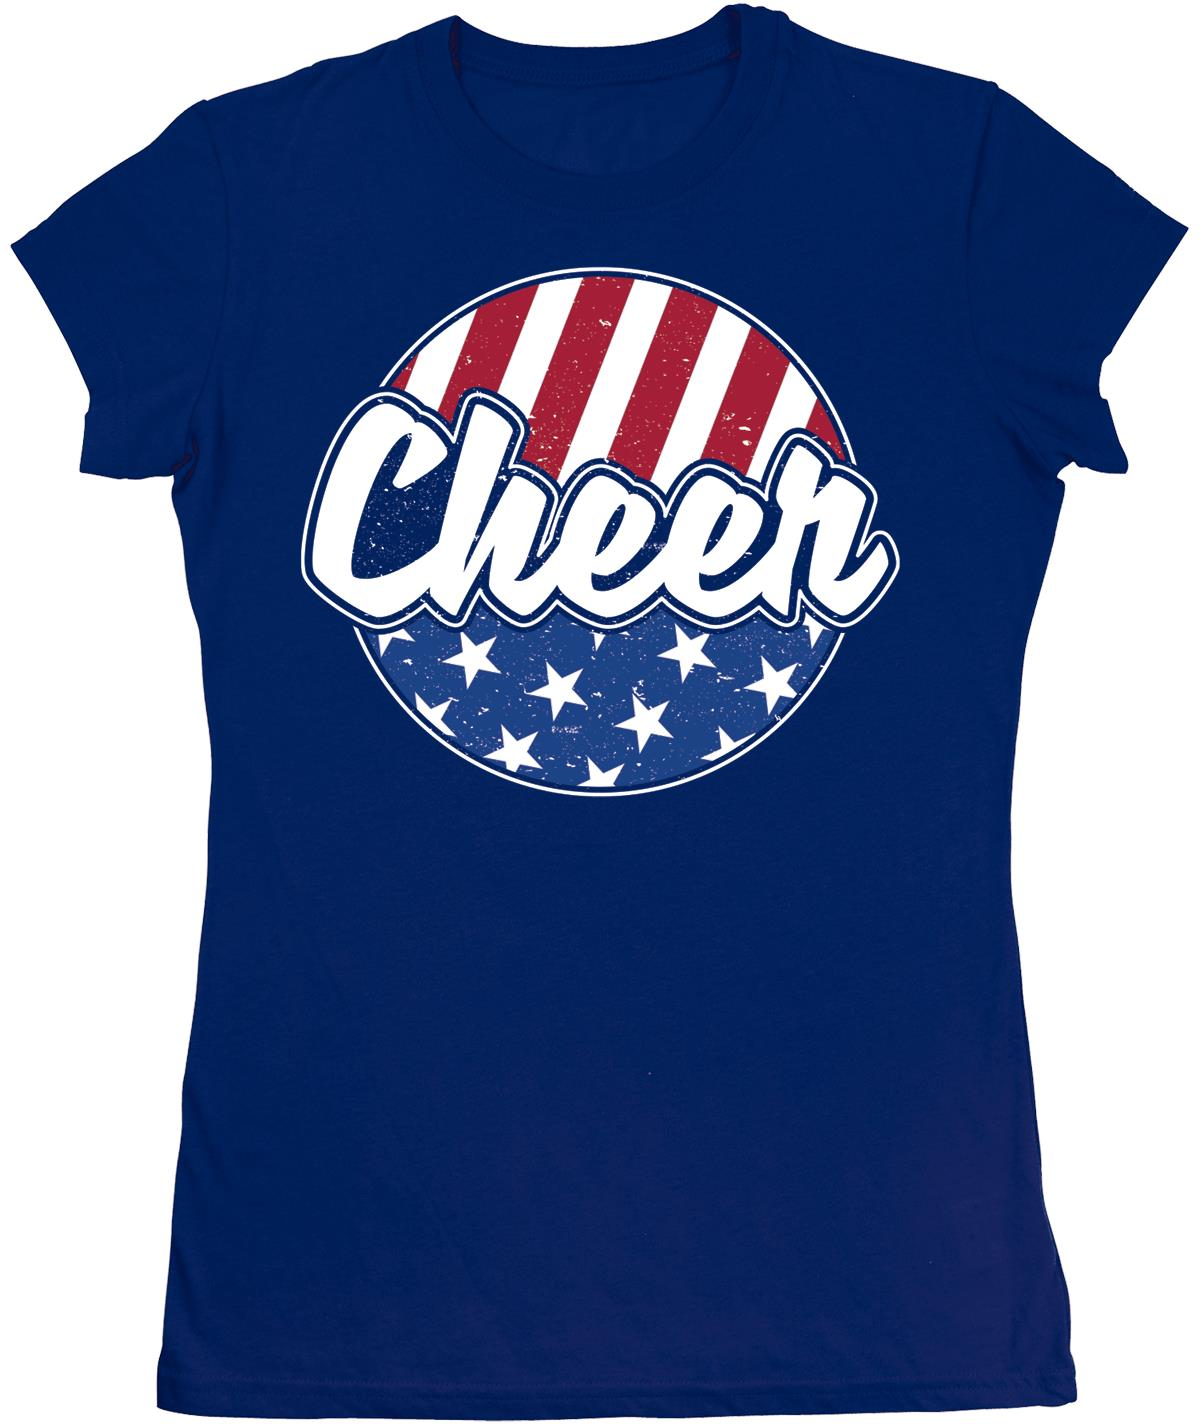 Chassé Cheer Patriotic Tee